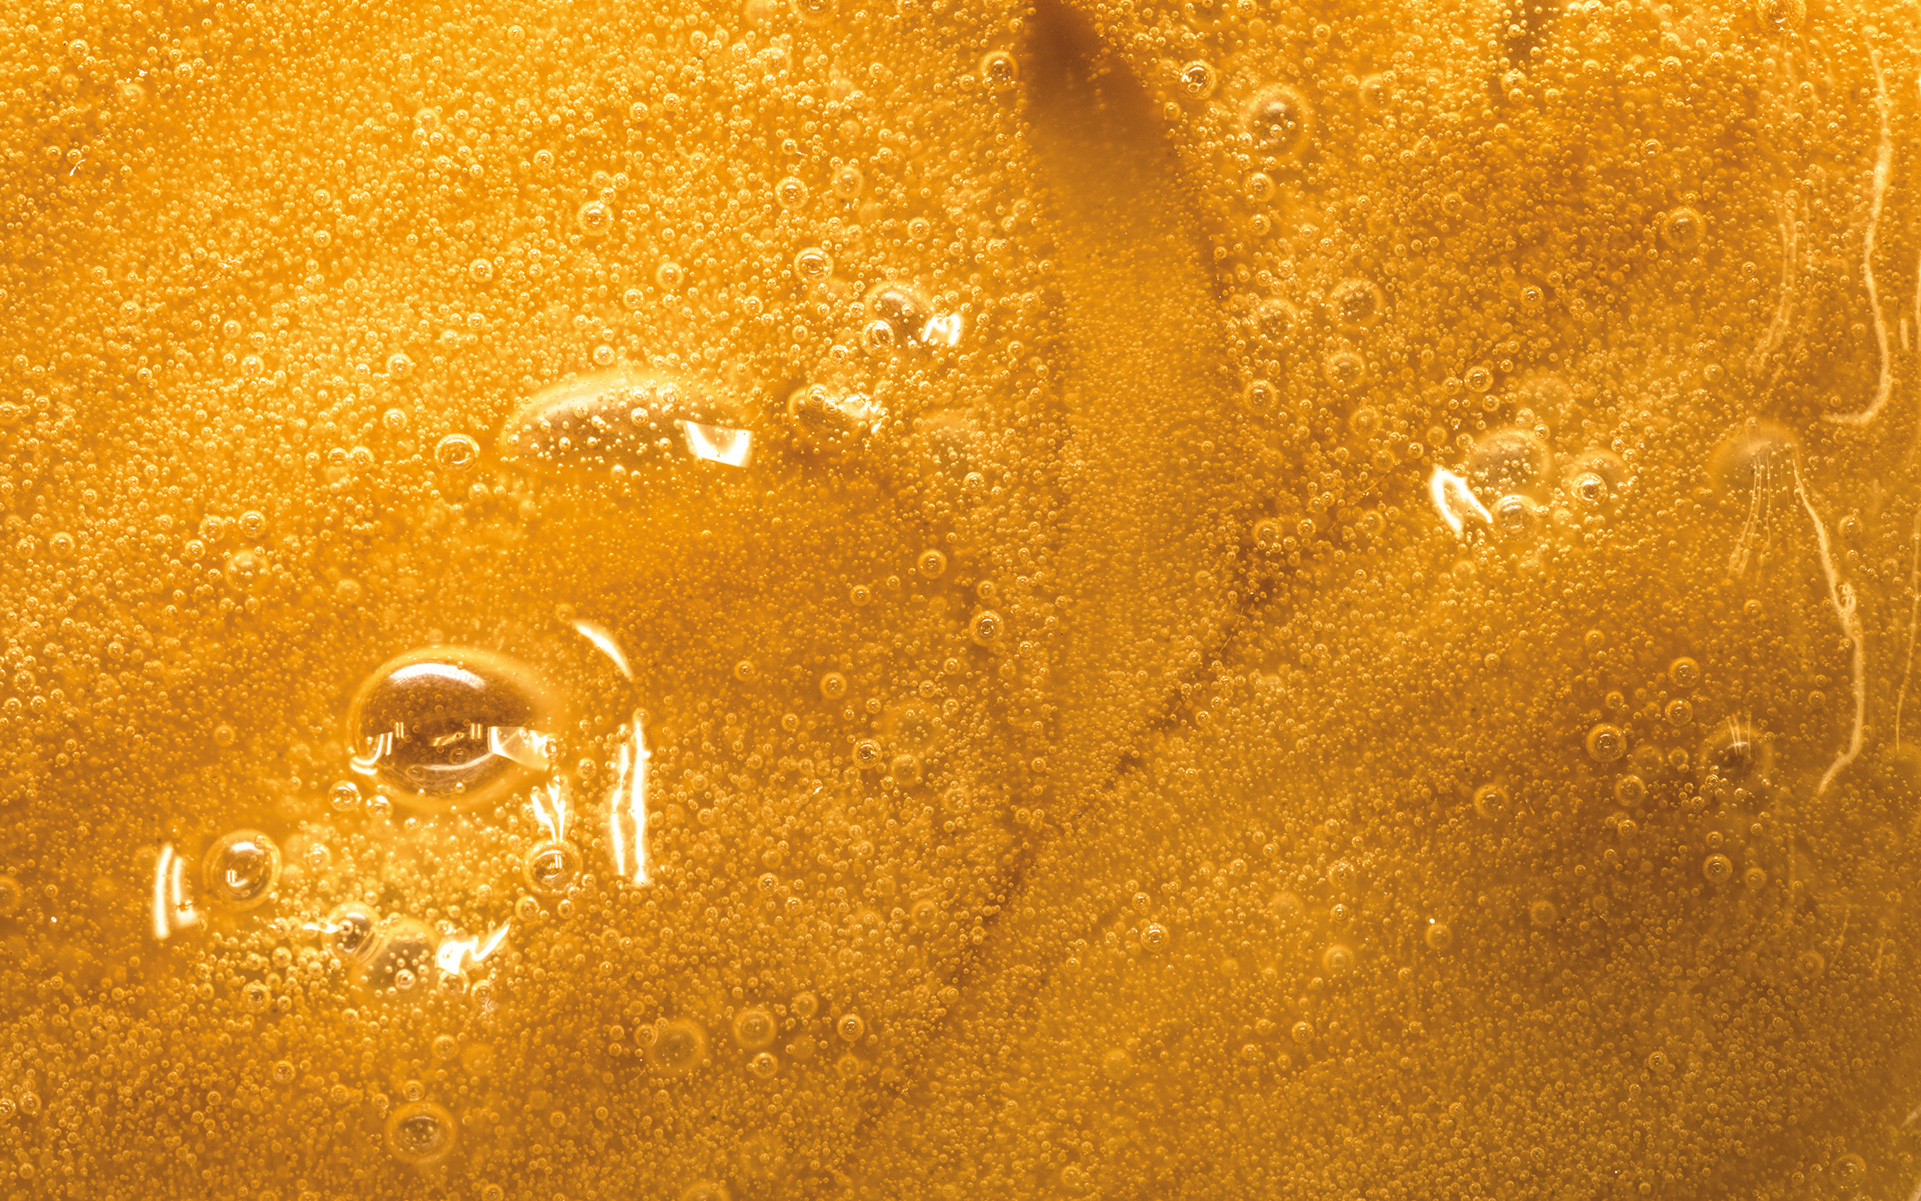 cannabis rosin-press technology, solventless marijuana, cannabis concentrate, extraction labs